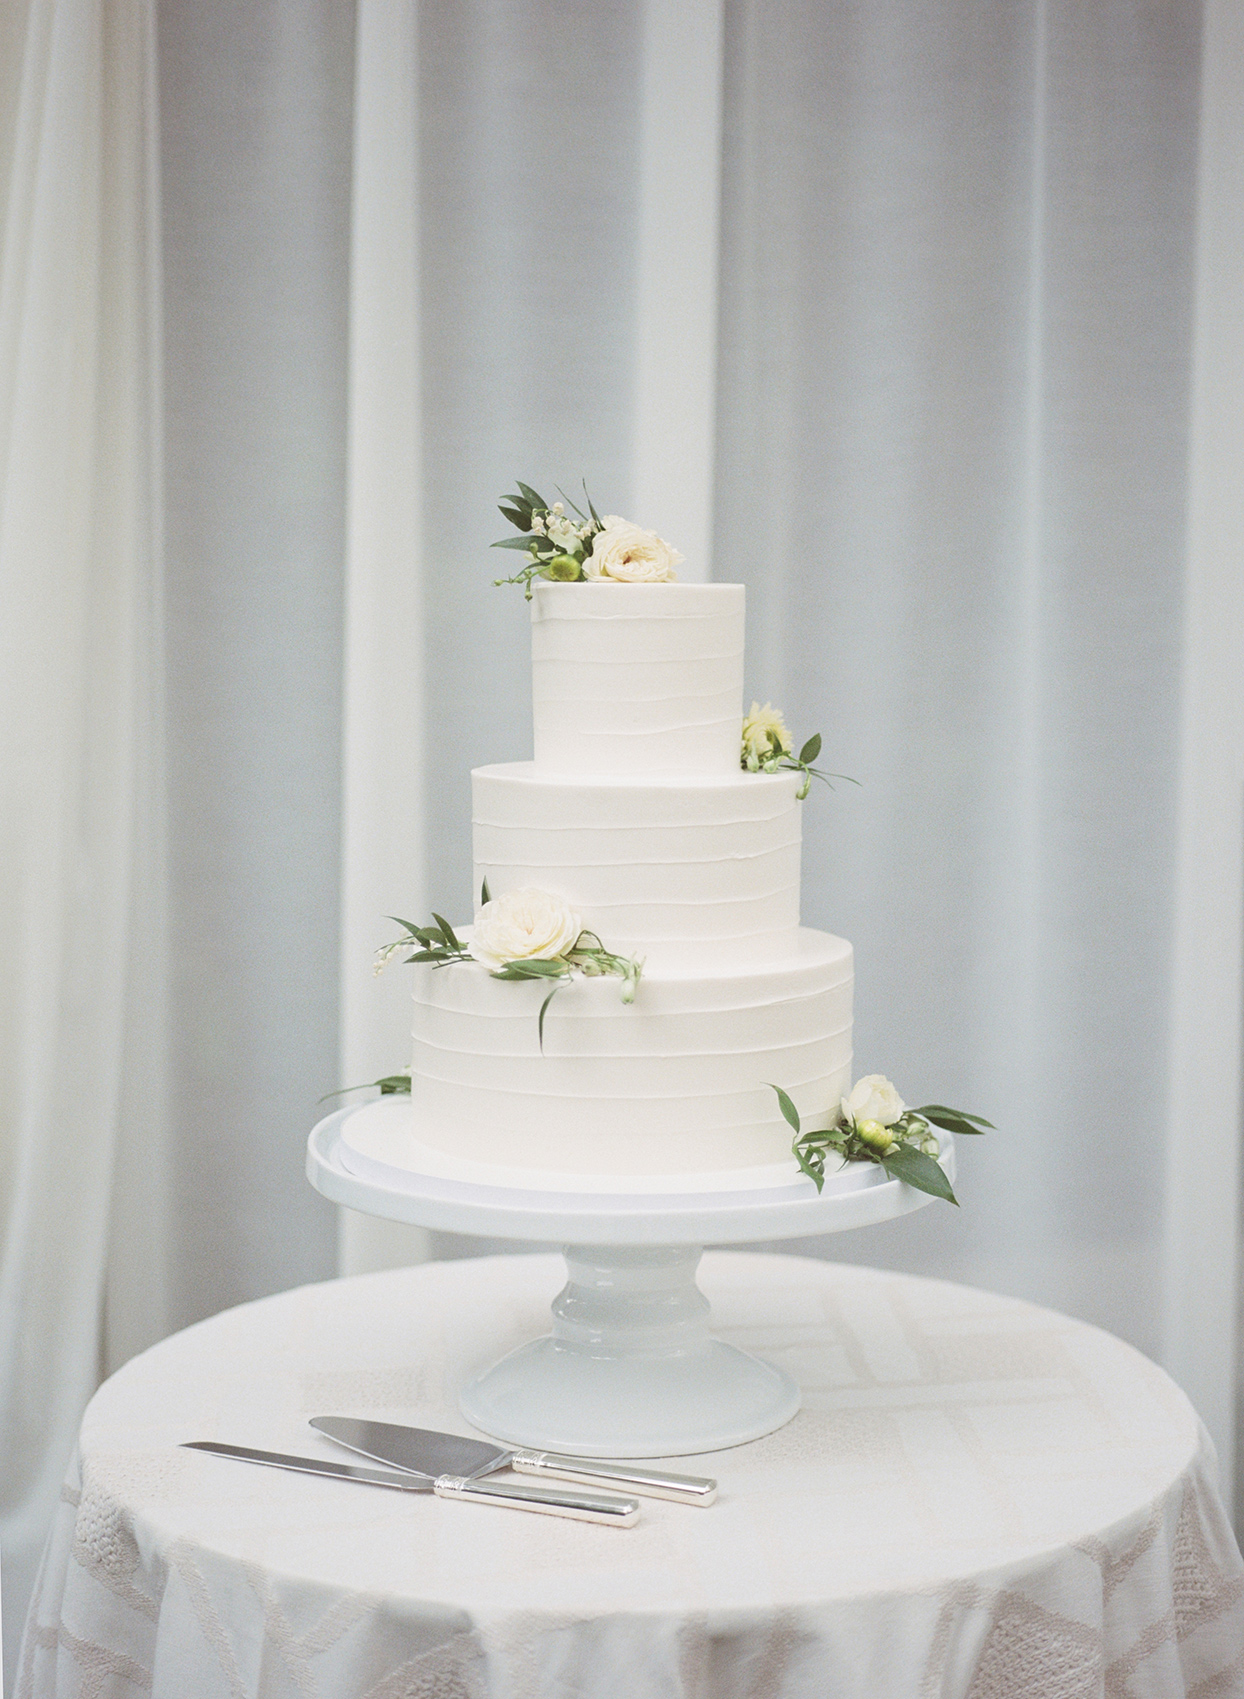 Wedding cake with white butter cream, stripes, and flower accents